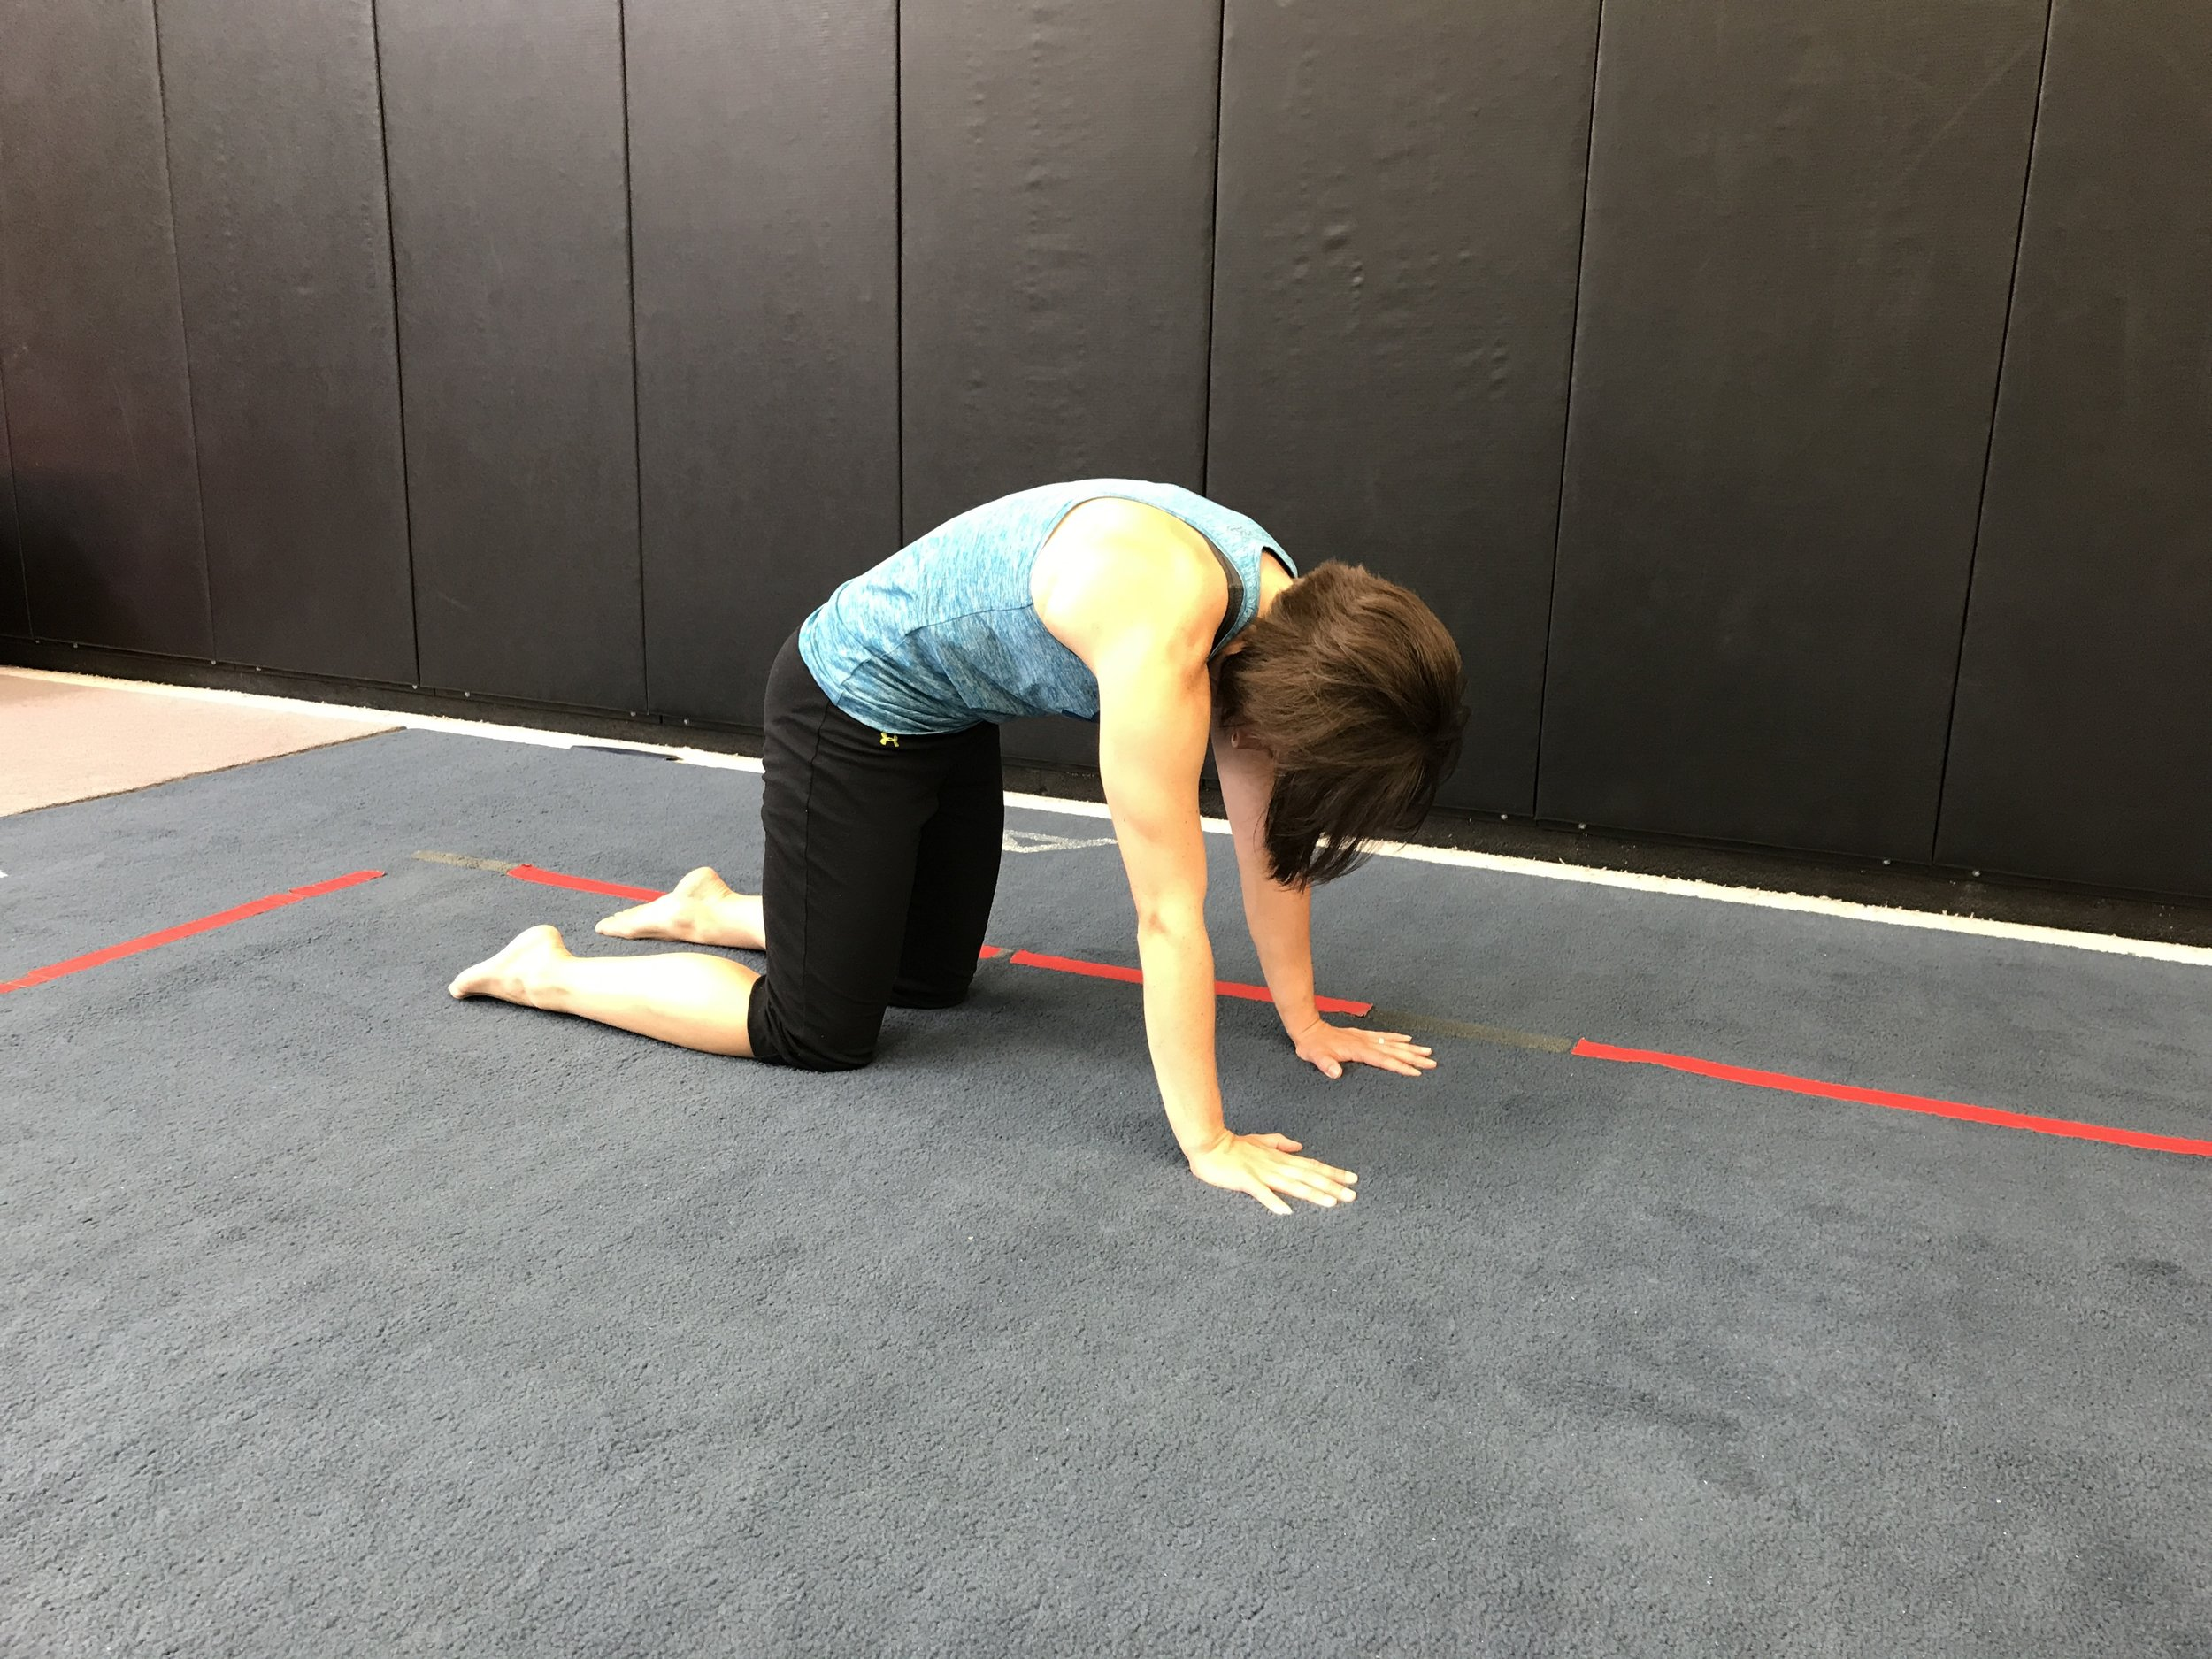 Then, round the back as much as possible - drop the head down to increase the stretch. Think of pressing the spine up into the ceiling.